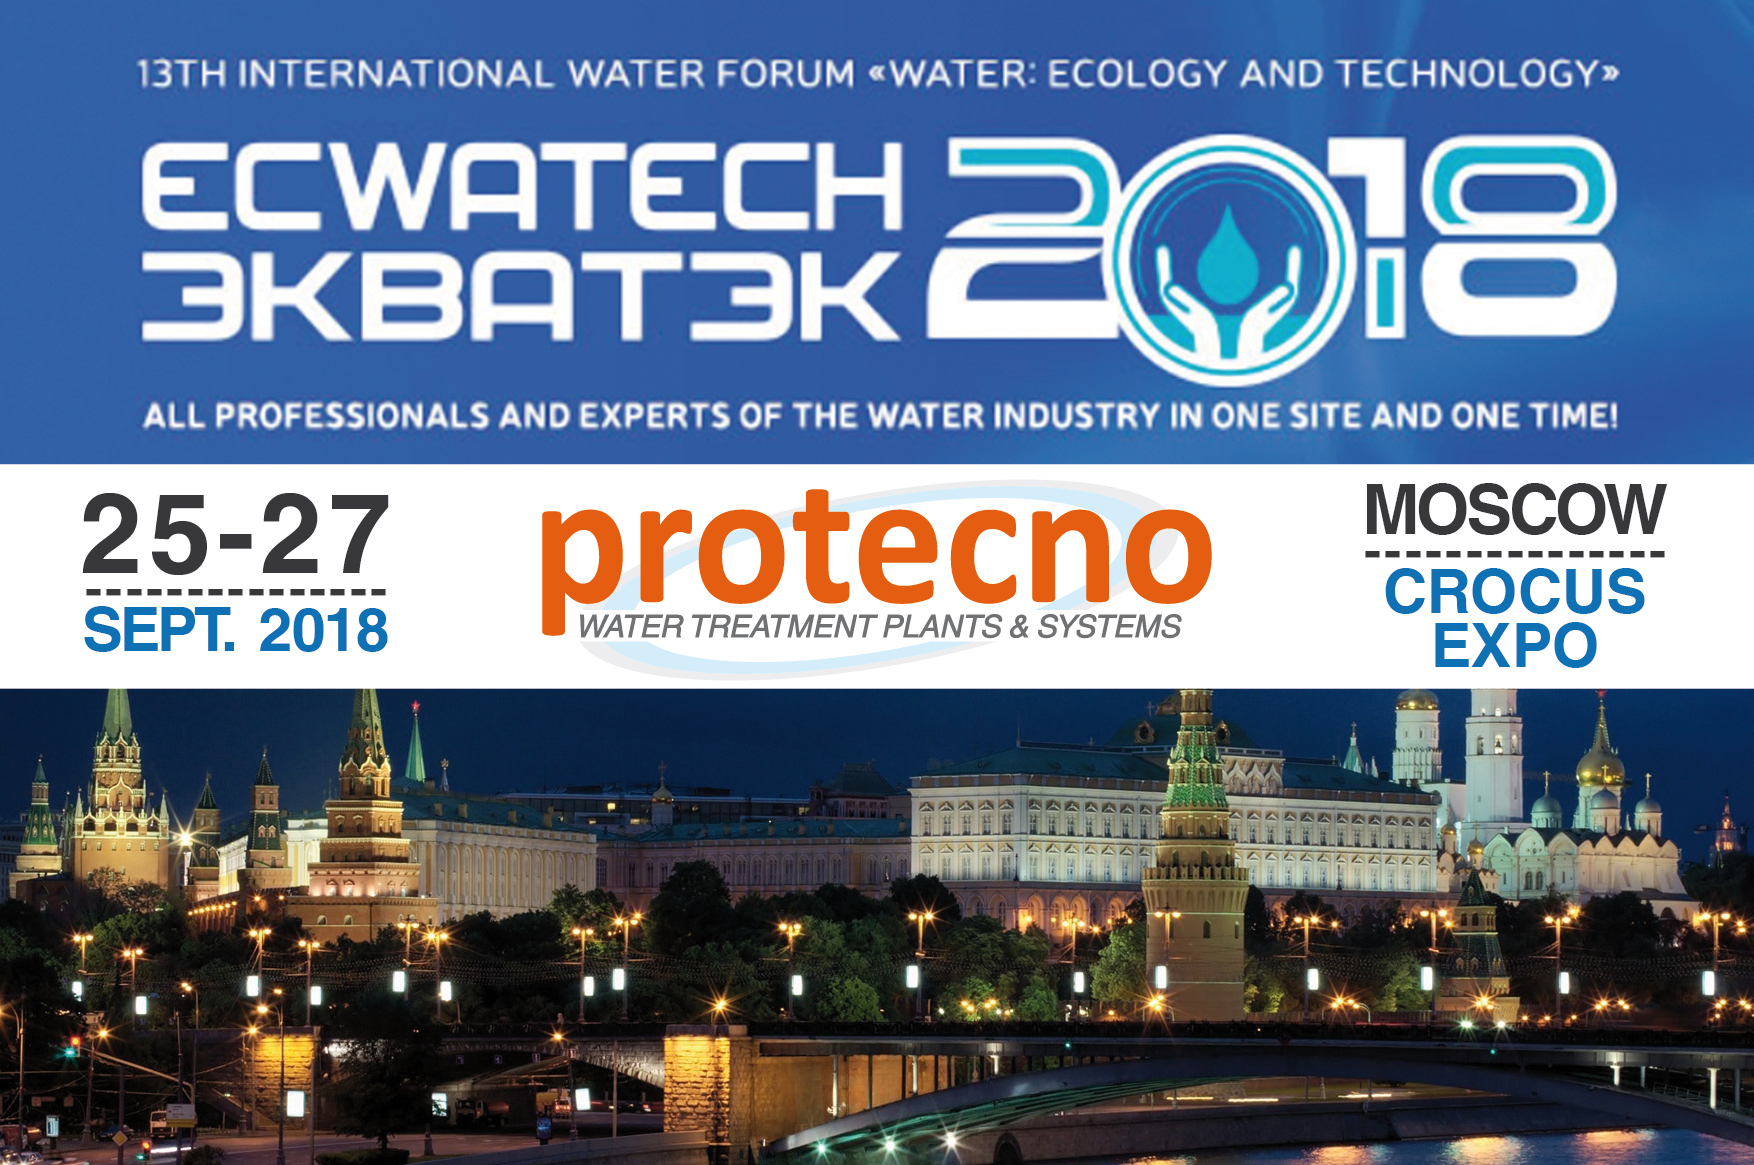 ECWATECH 2018! 25-27 September, MOSCOW